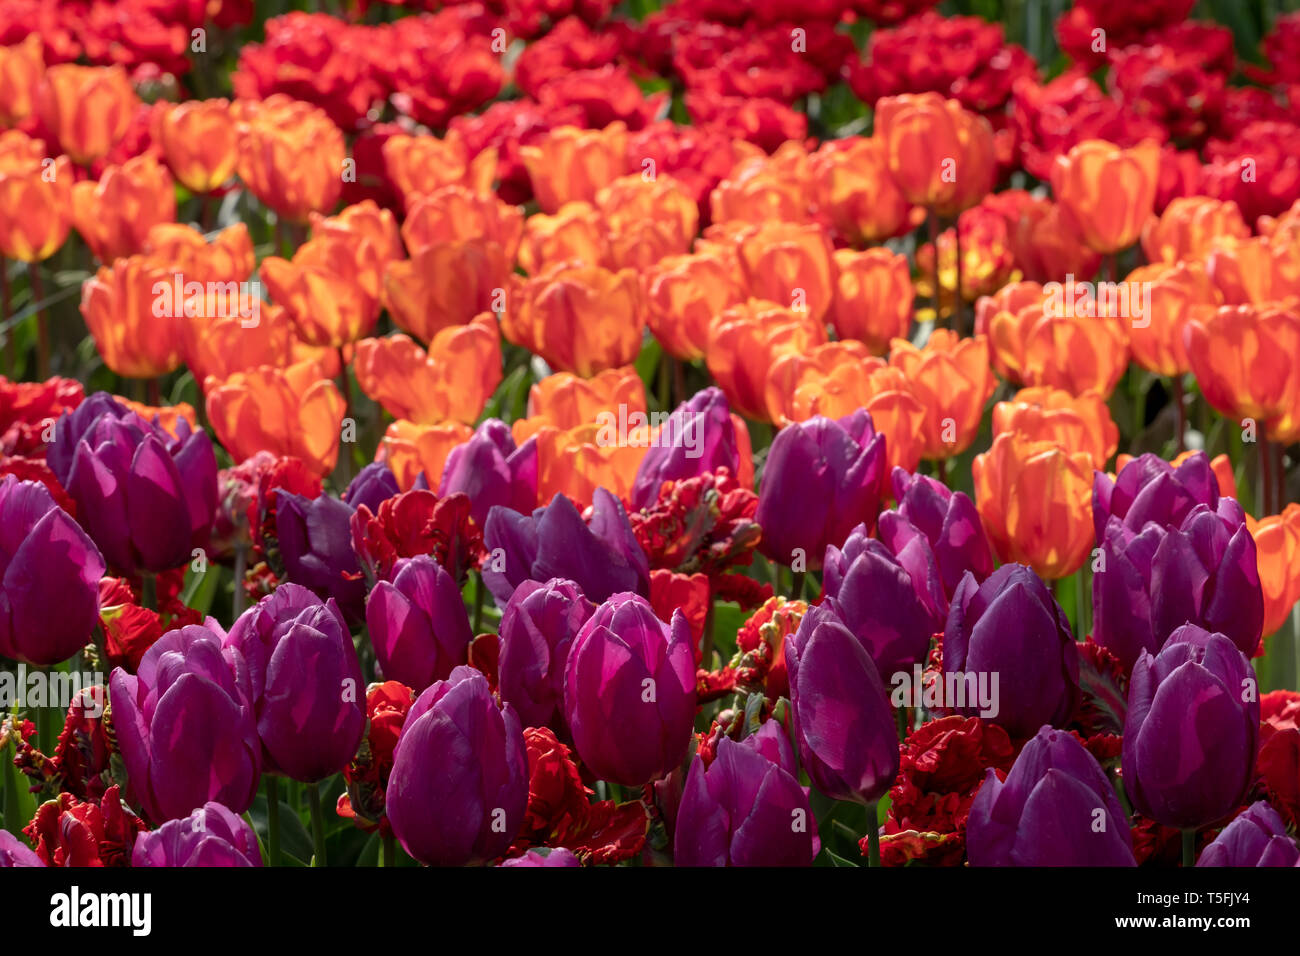 Tulips in vibrant colours in the late afternoon sun at Keukenhof Gardens, Lisse, Netherlands. Lisse is the centre of Holland's floriculture industry. - Stock Image